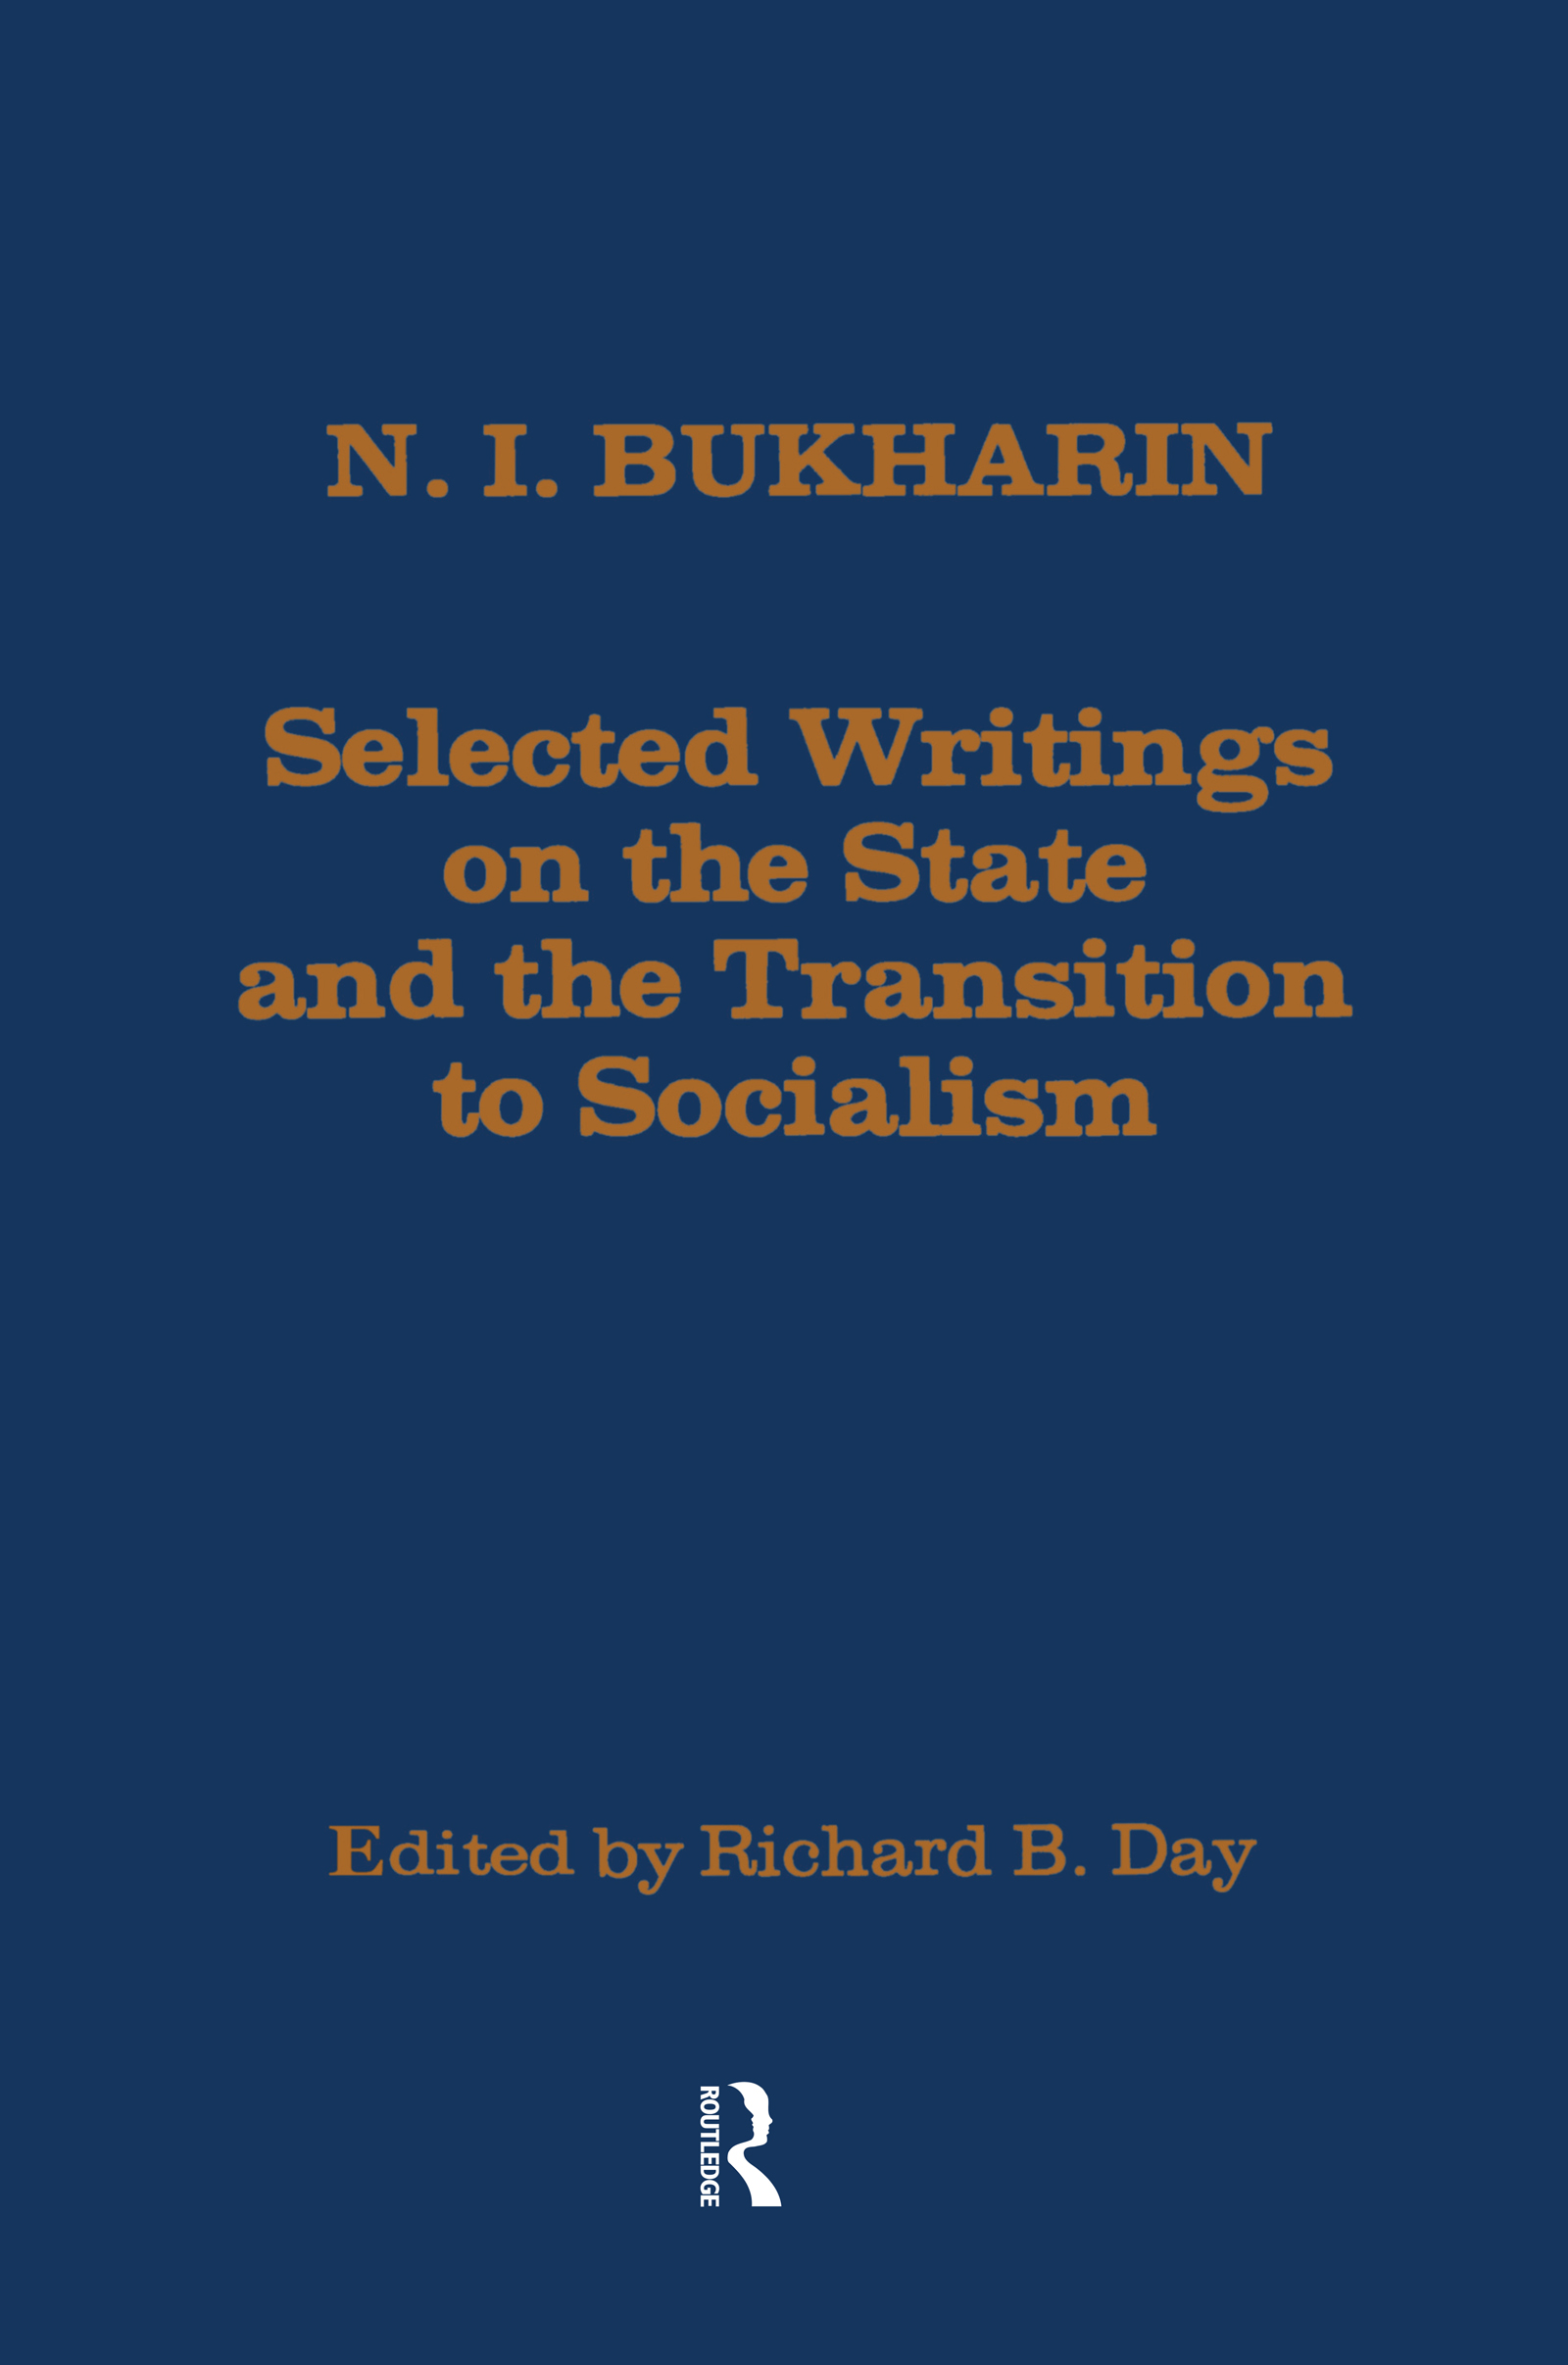 Selected Writings on the State and the Transition to Socialism